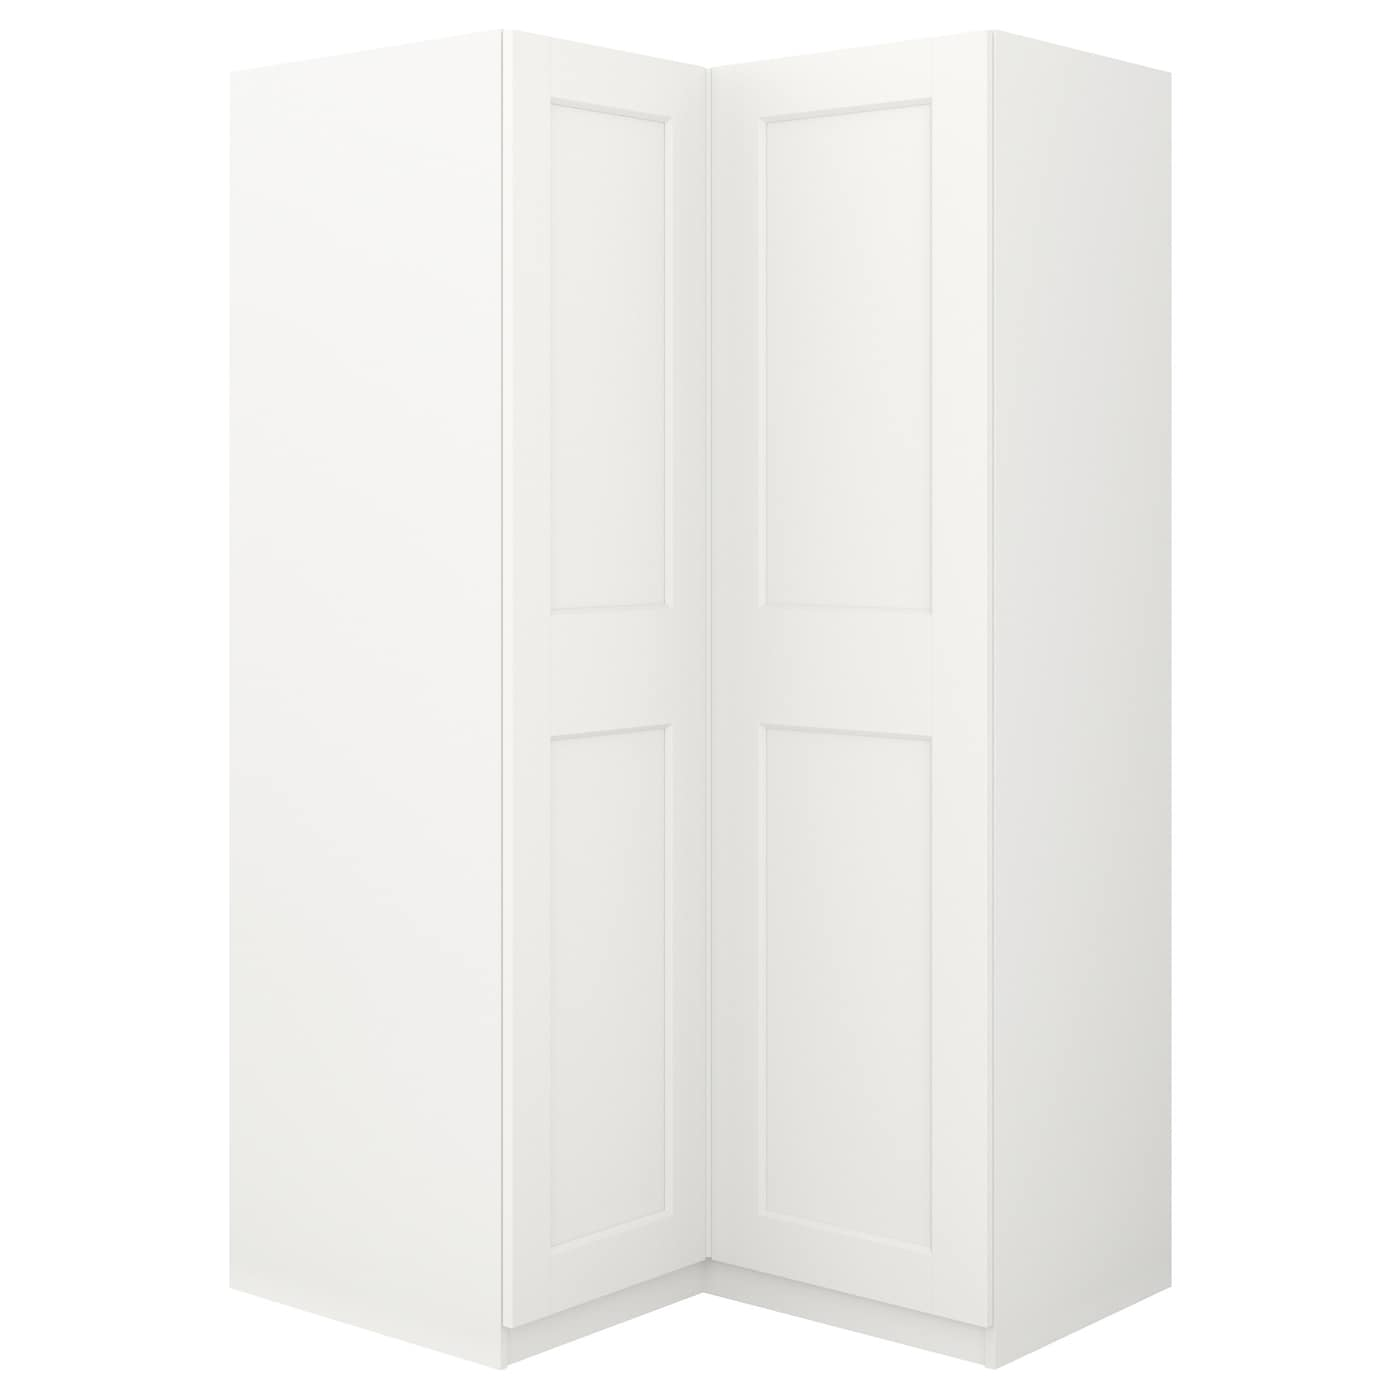 pax penderie d 39 angle blanc grimo blanc 111 111 x 201 cm ikea. Black Bedroom Furniture Sets. Home Design Ideas